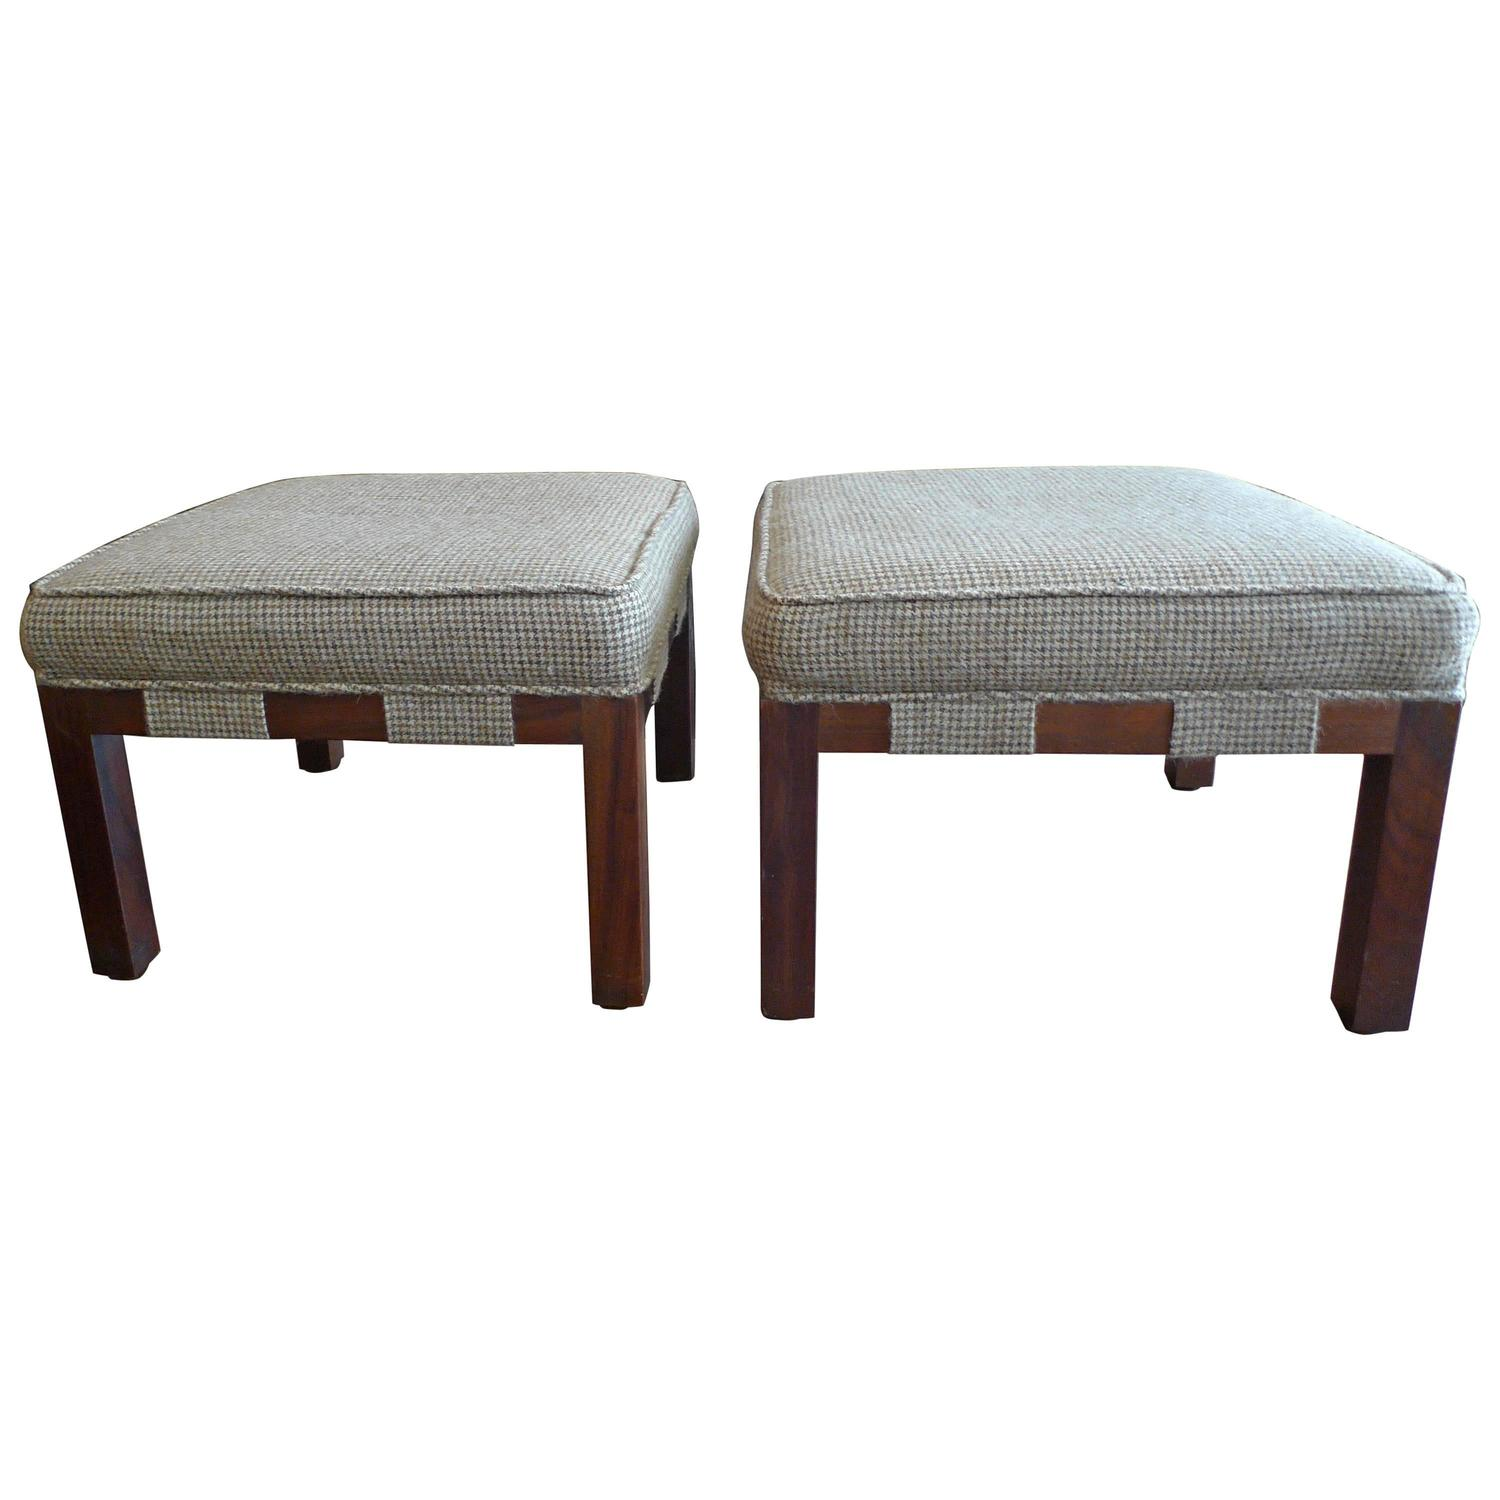 Pair Of French 1940s Stools For Sale At 1stdibs